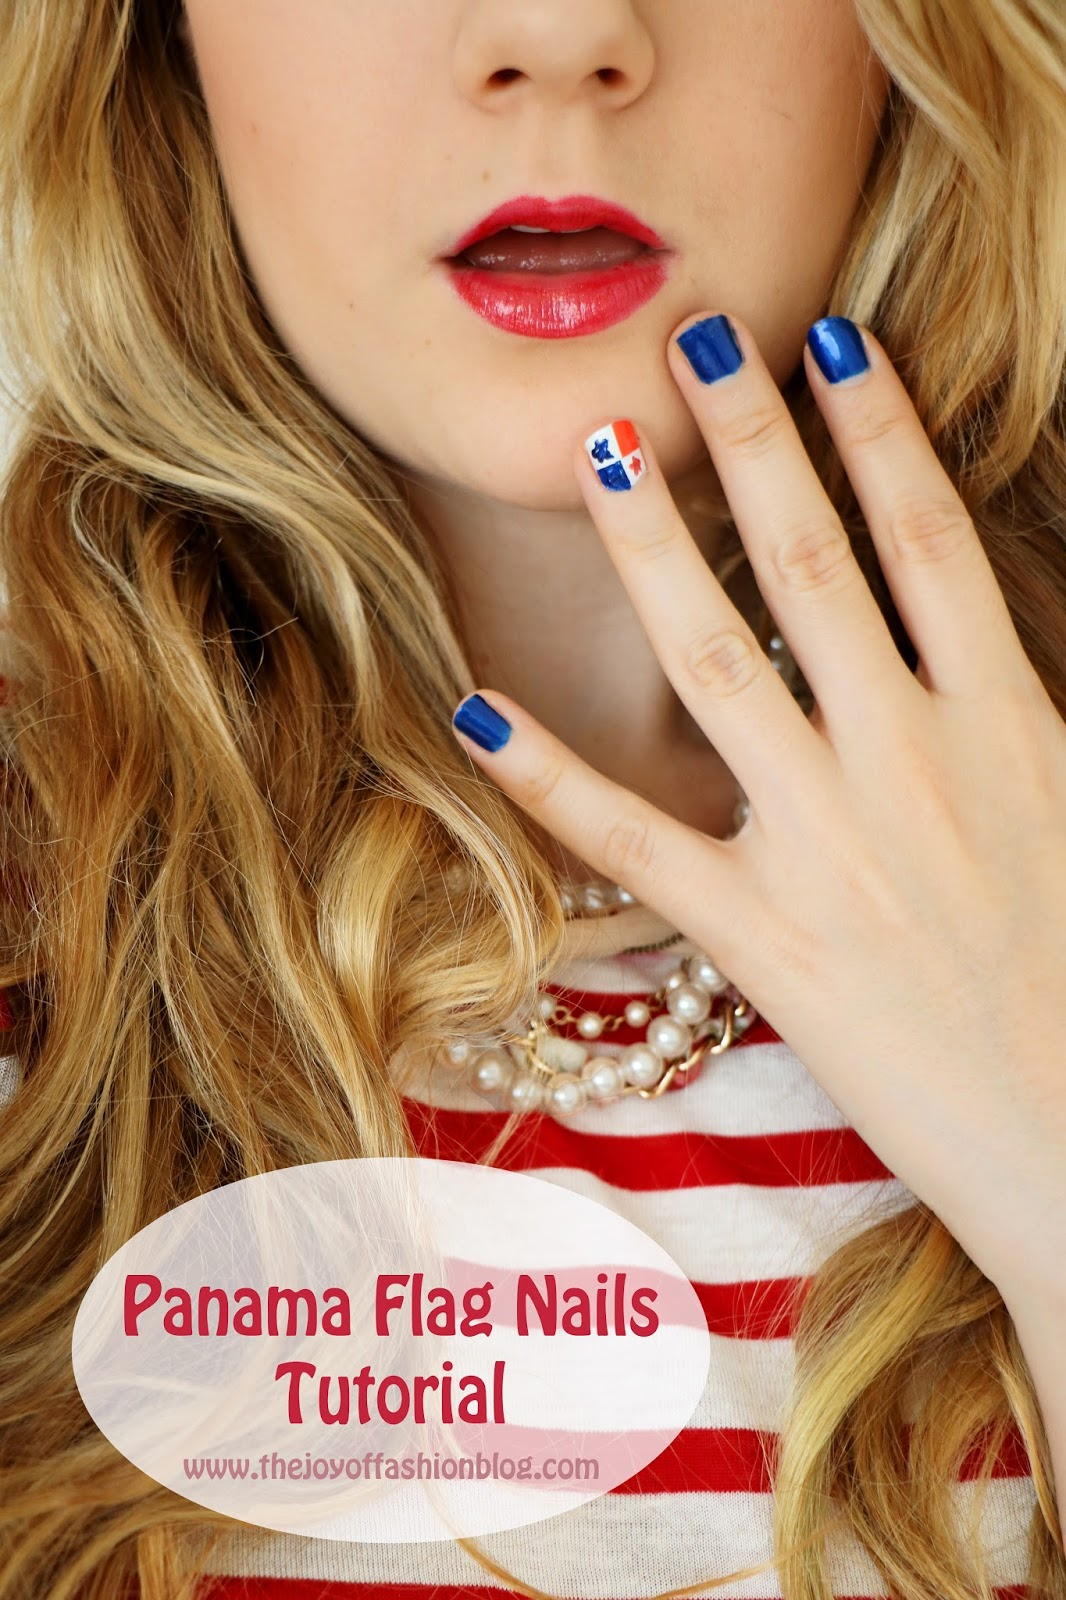 Loving these super cute flag nails!